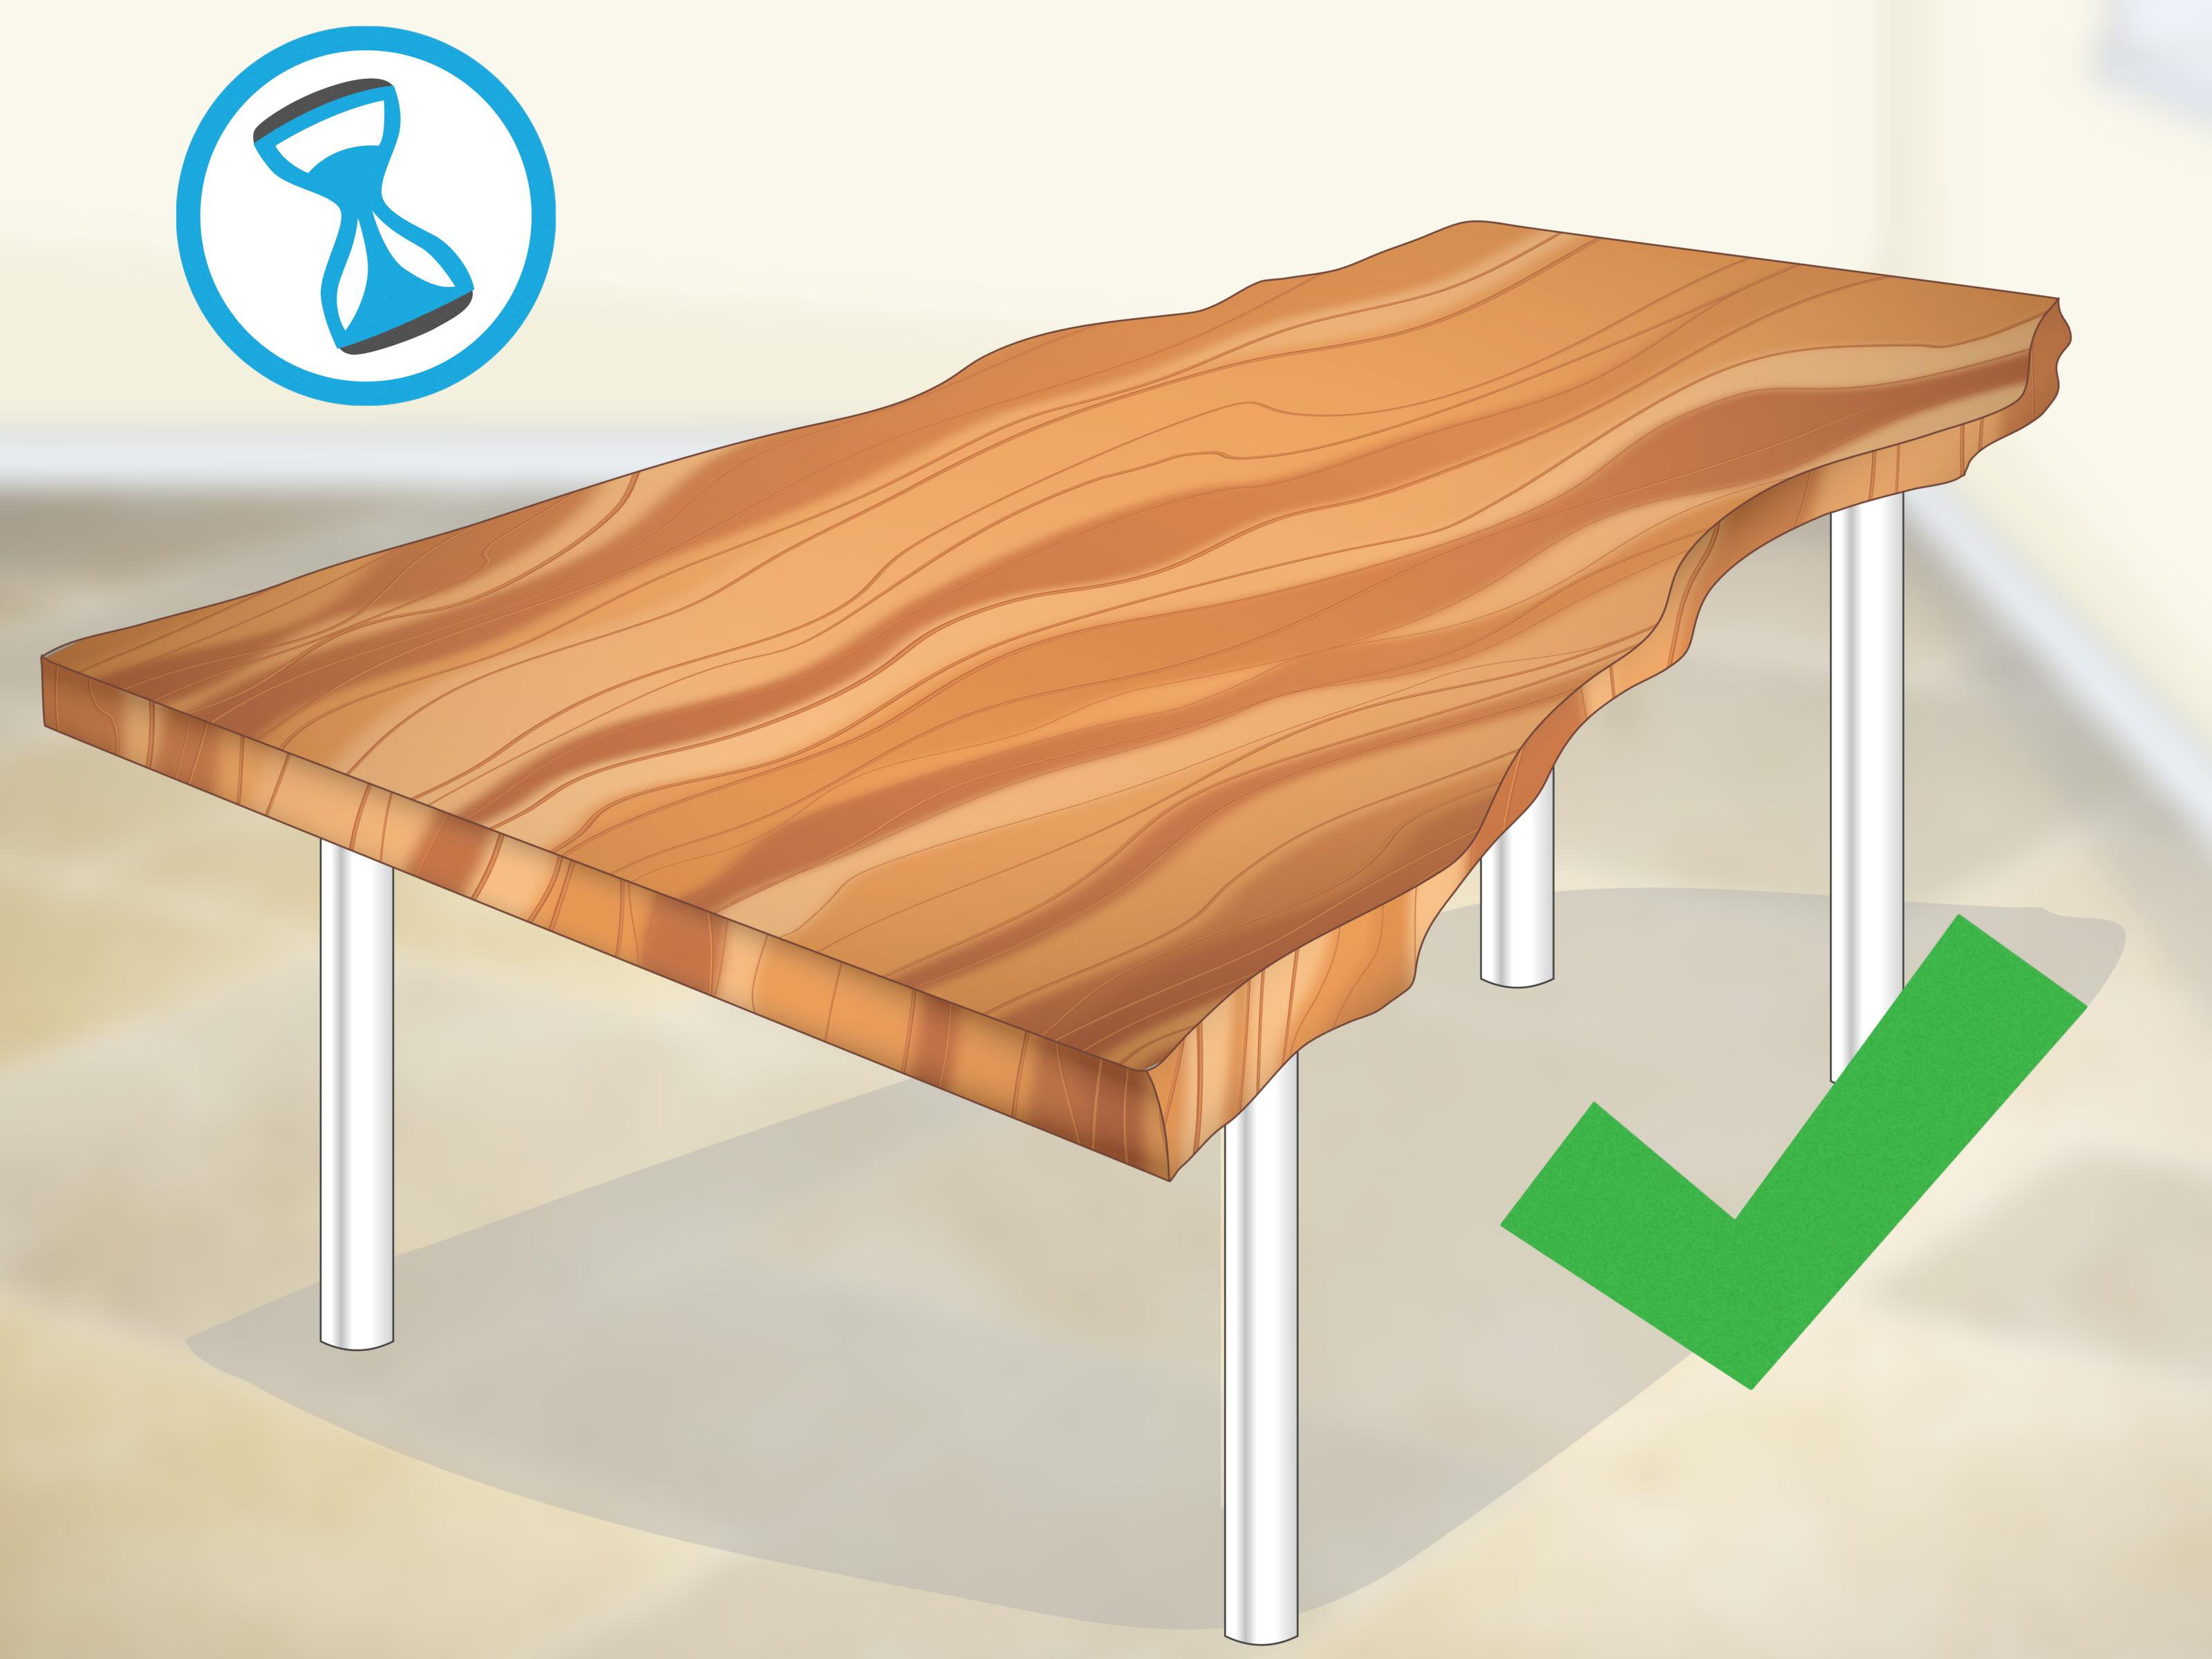 How To Waterproof Wood Countertop How To Finish Live Edge Slabs With Pictures Wikihow